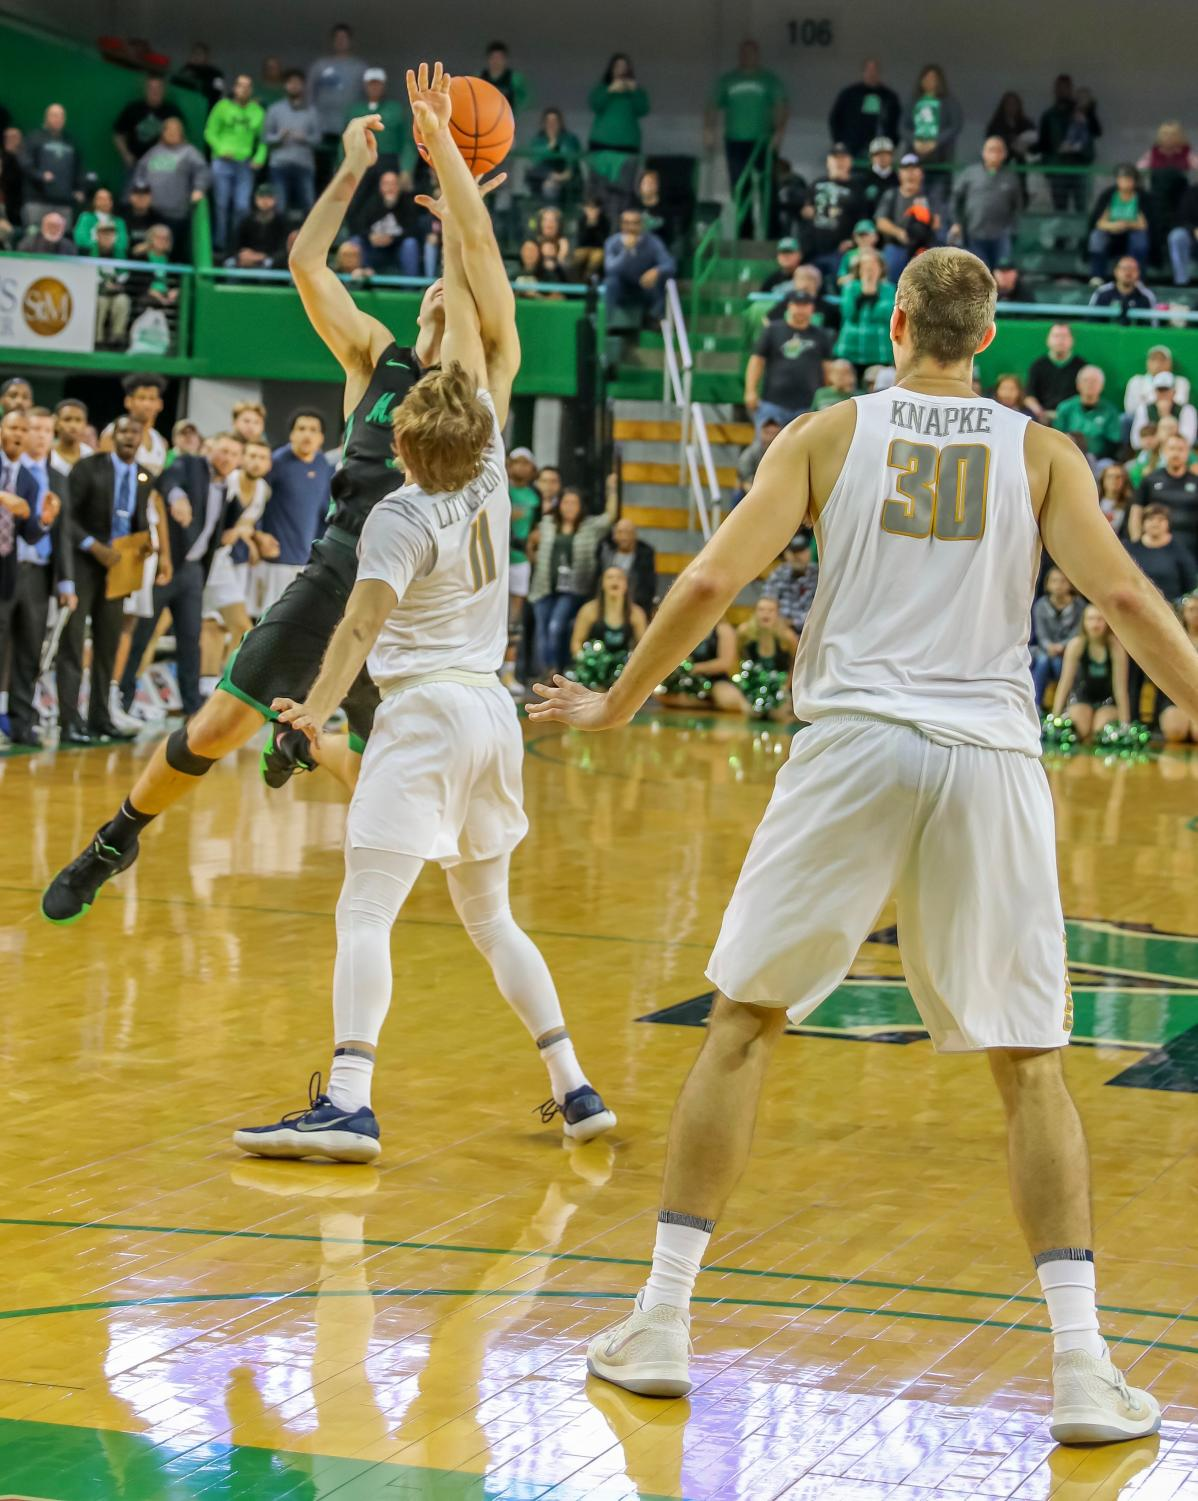 Herd senior guard Jon Elmore is defended by Toledo sophomore guard Spencer Littleson when attempting a crucial 3-point shot. The possible foul is not called and Elmore is unable to take free throws to secure a possible Marshall victory.